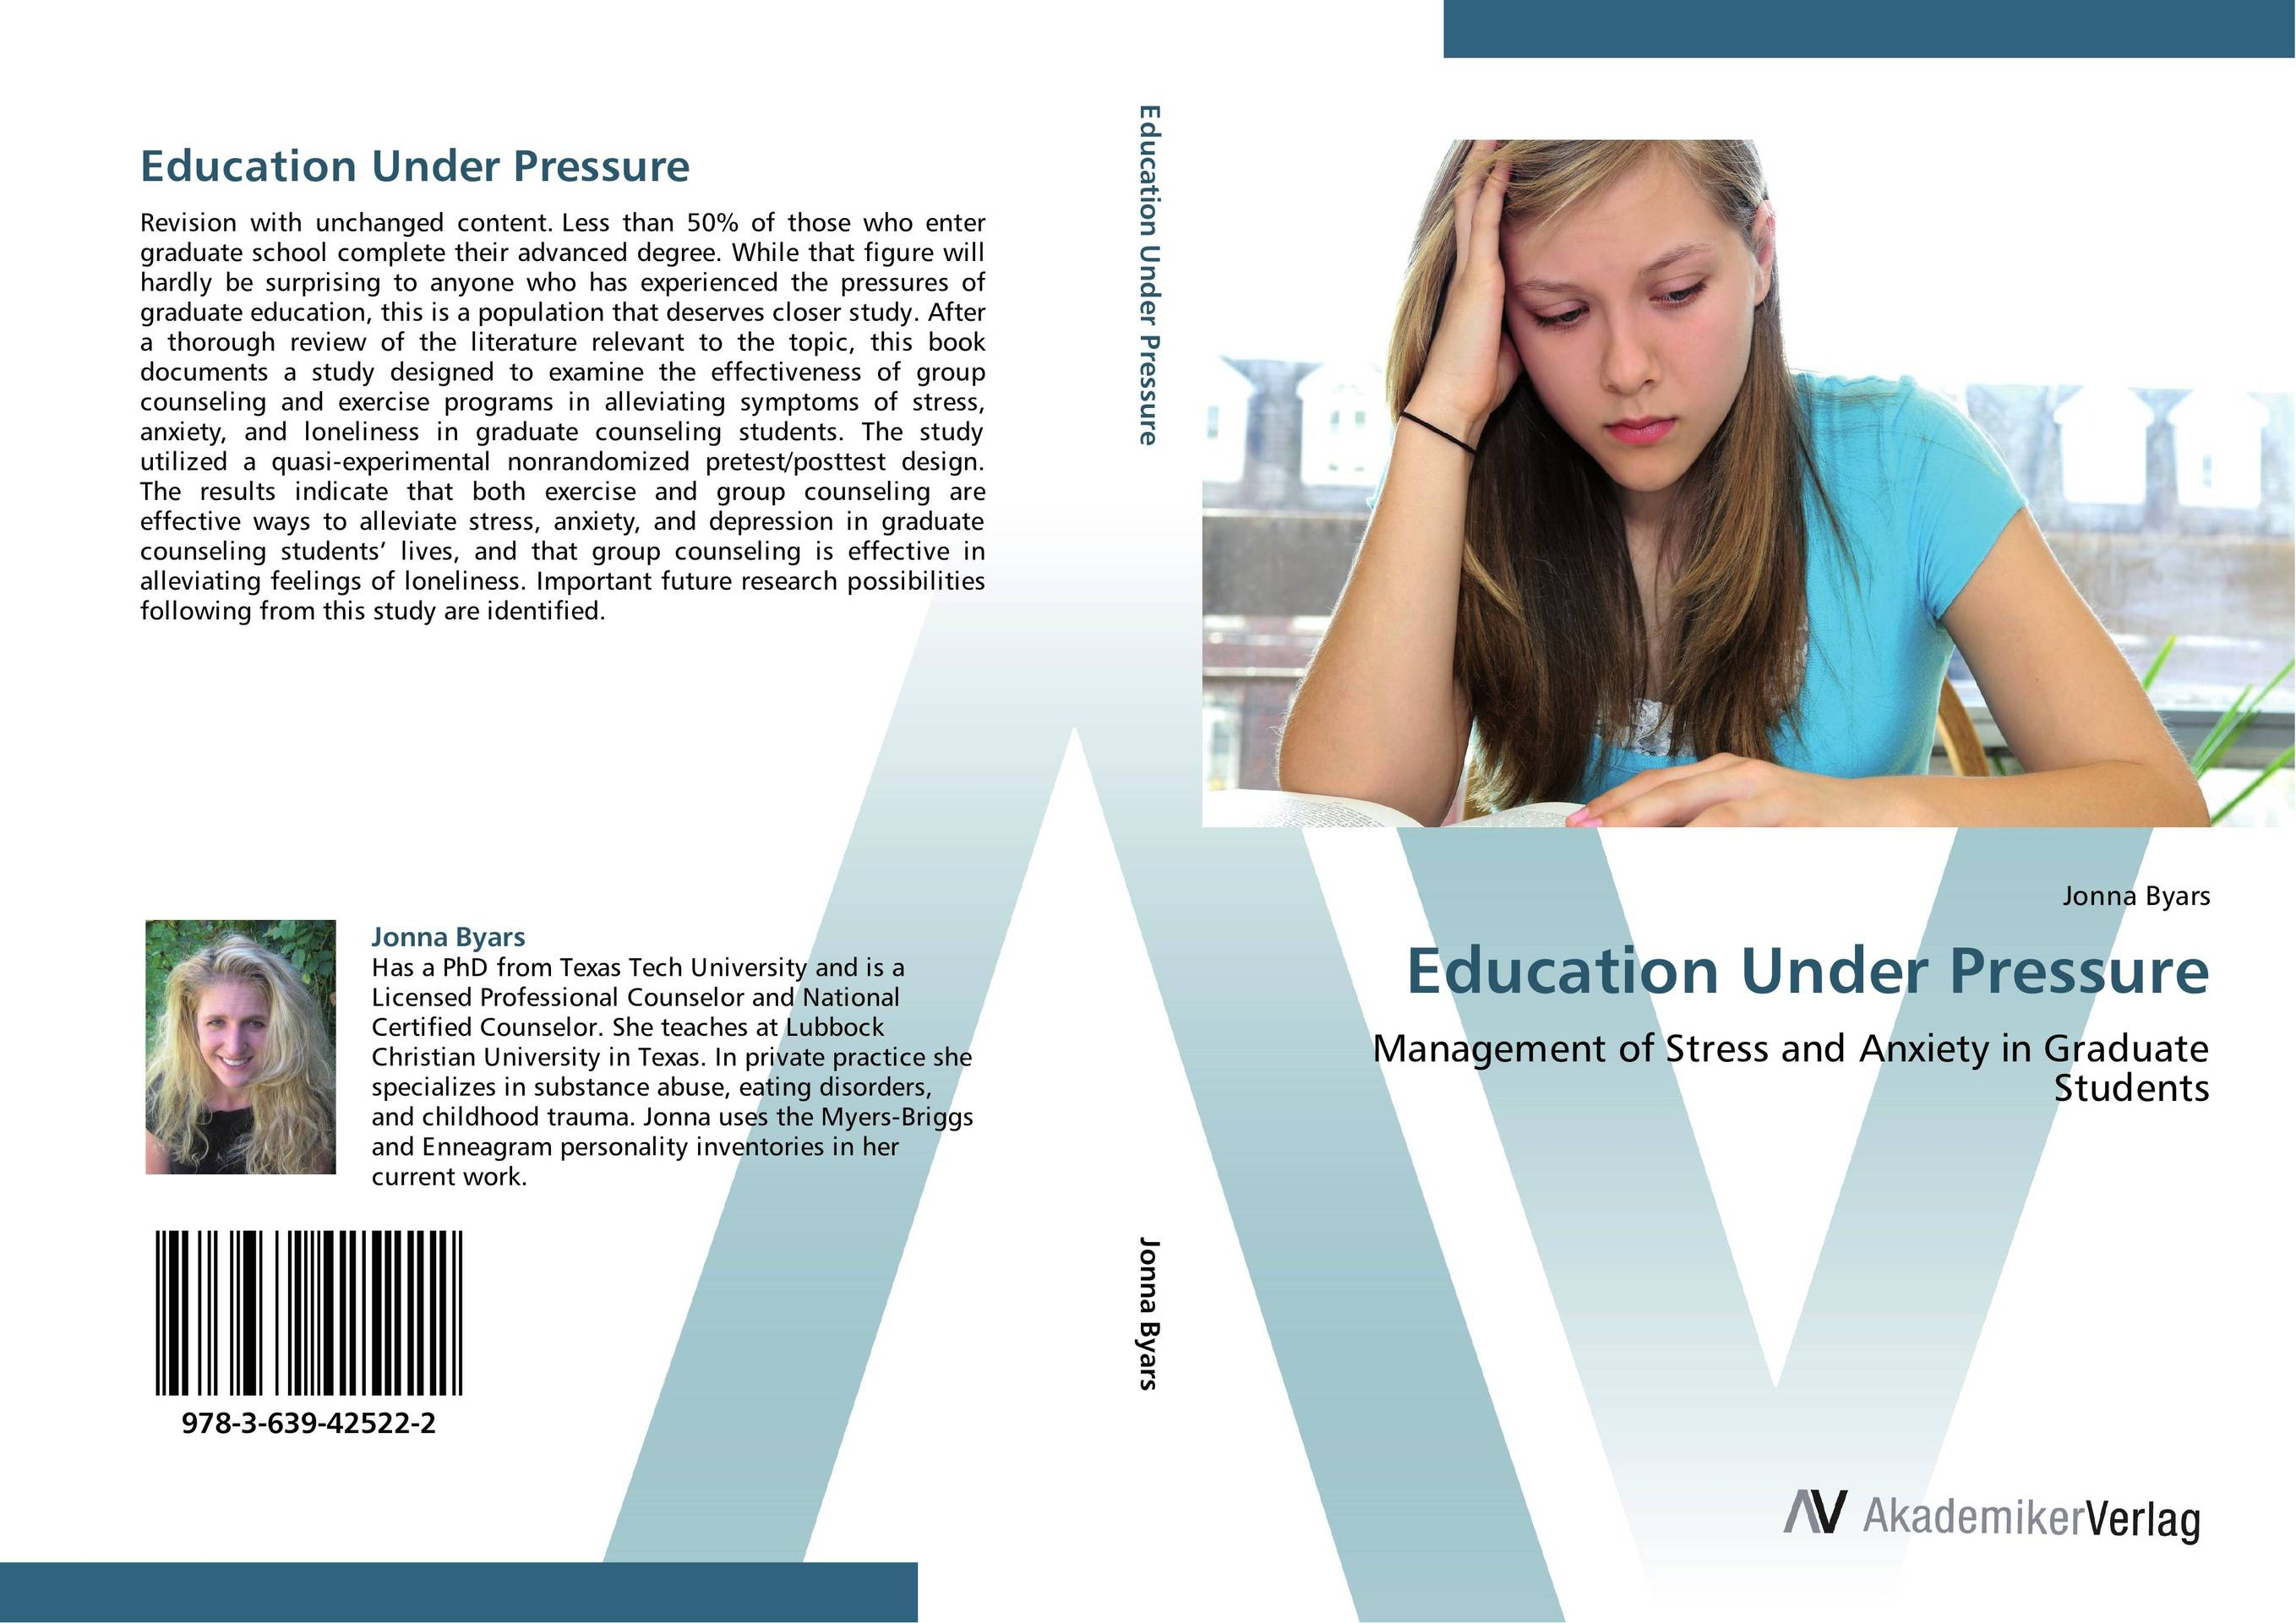 Education Under Pressure teenagers and their counseling needs